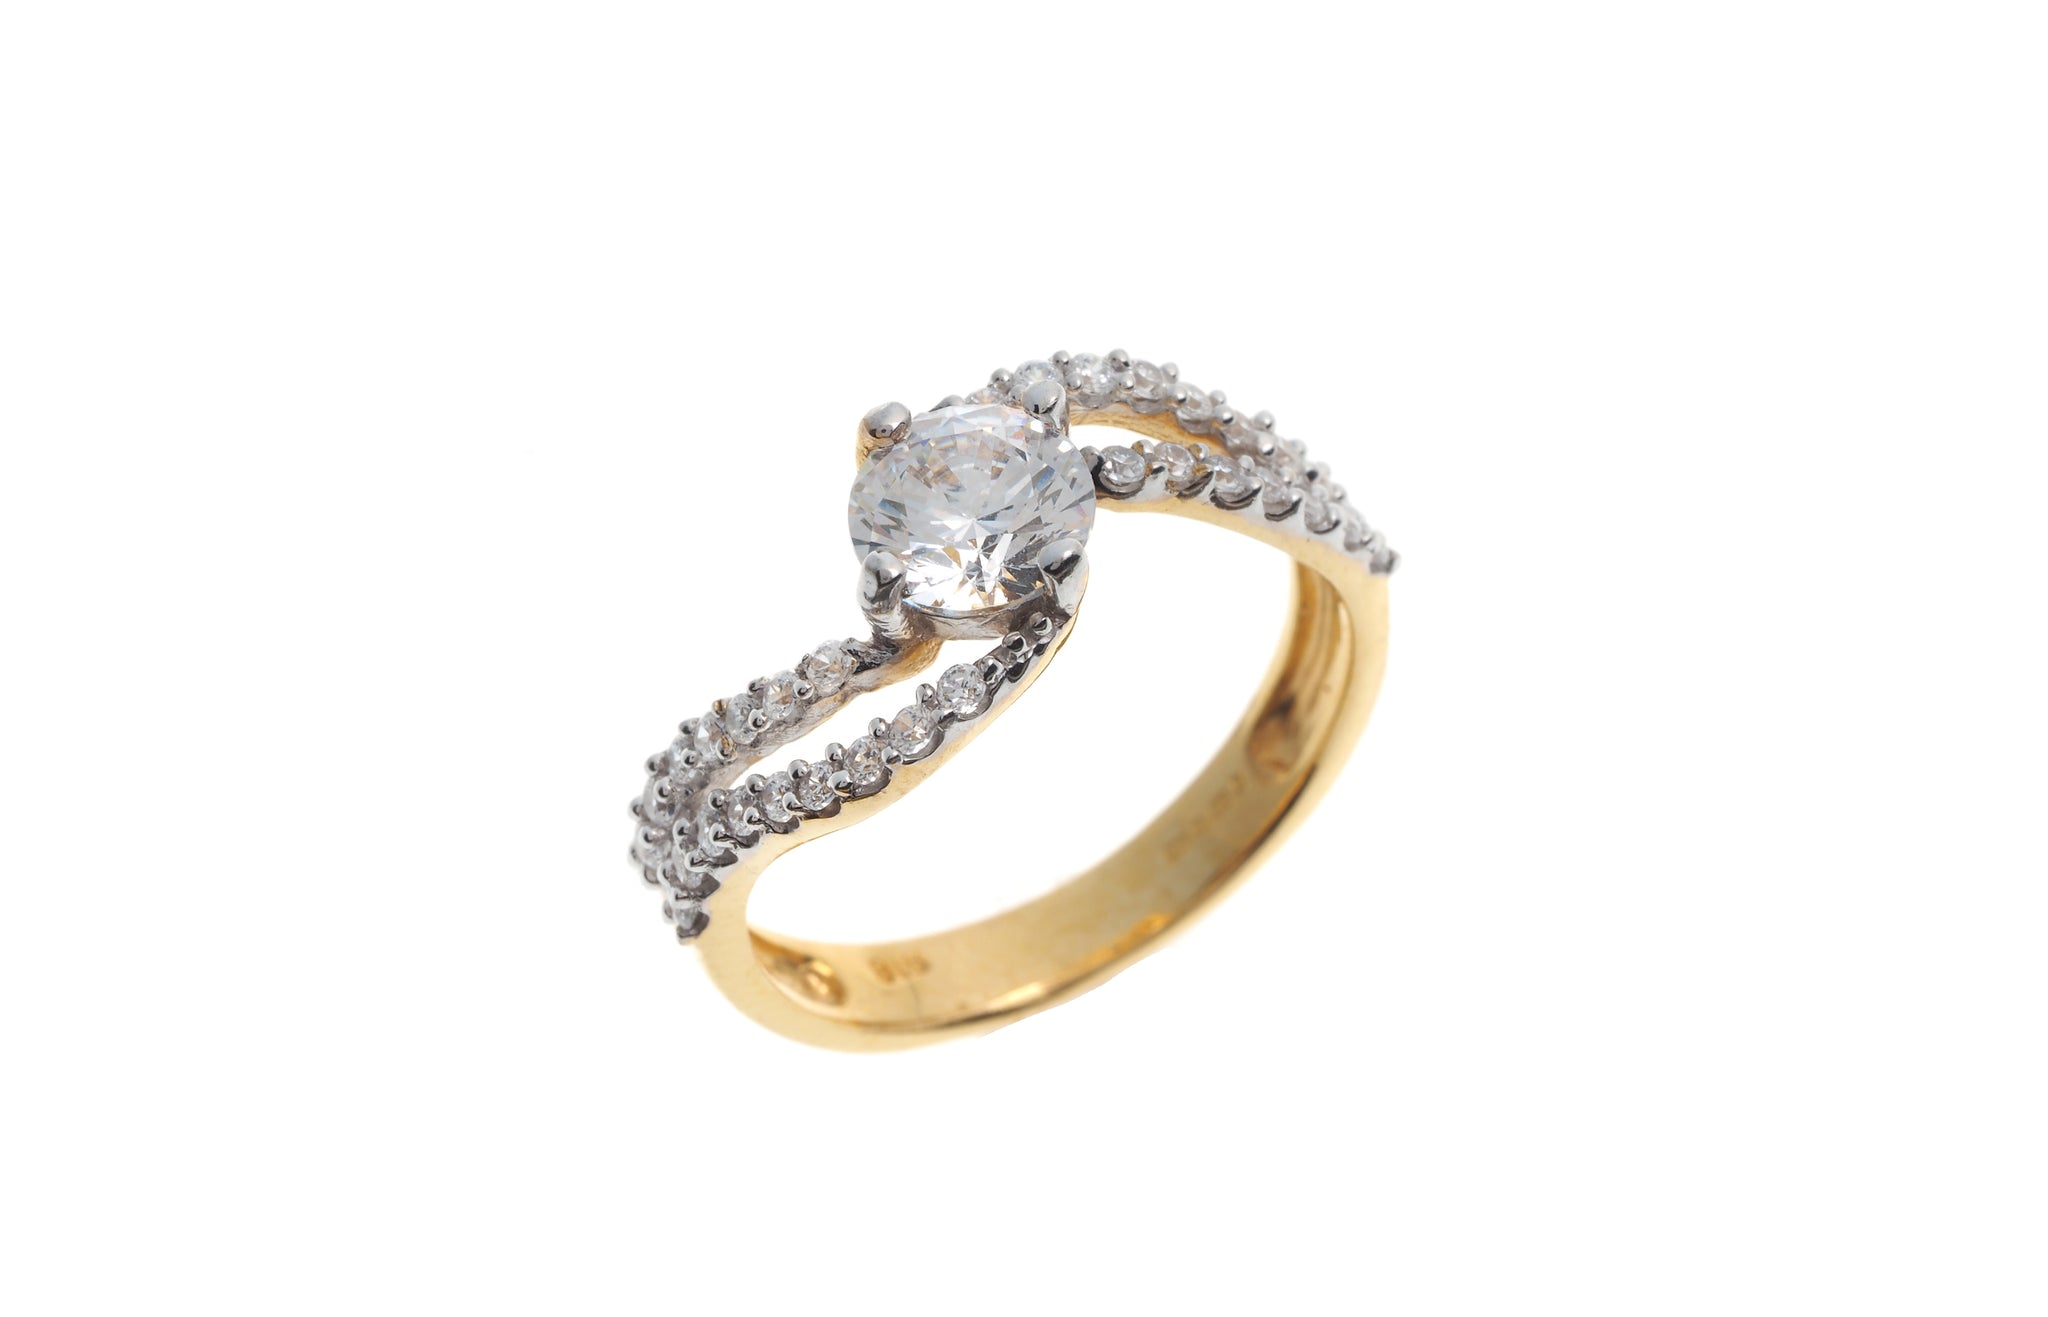 22ct Gold Cubic Zirconia Engagement Ring & Wedding Band Suite LR14436